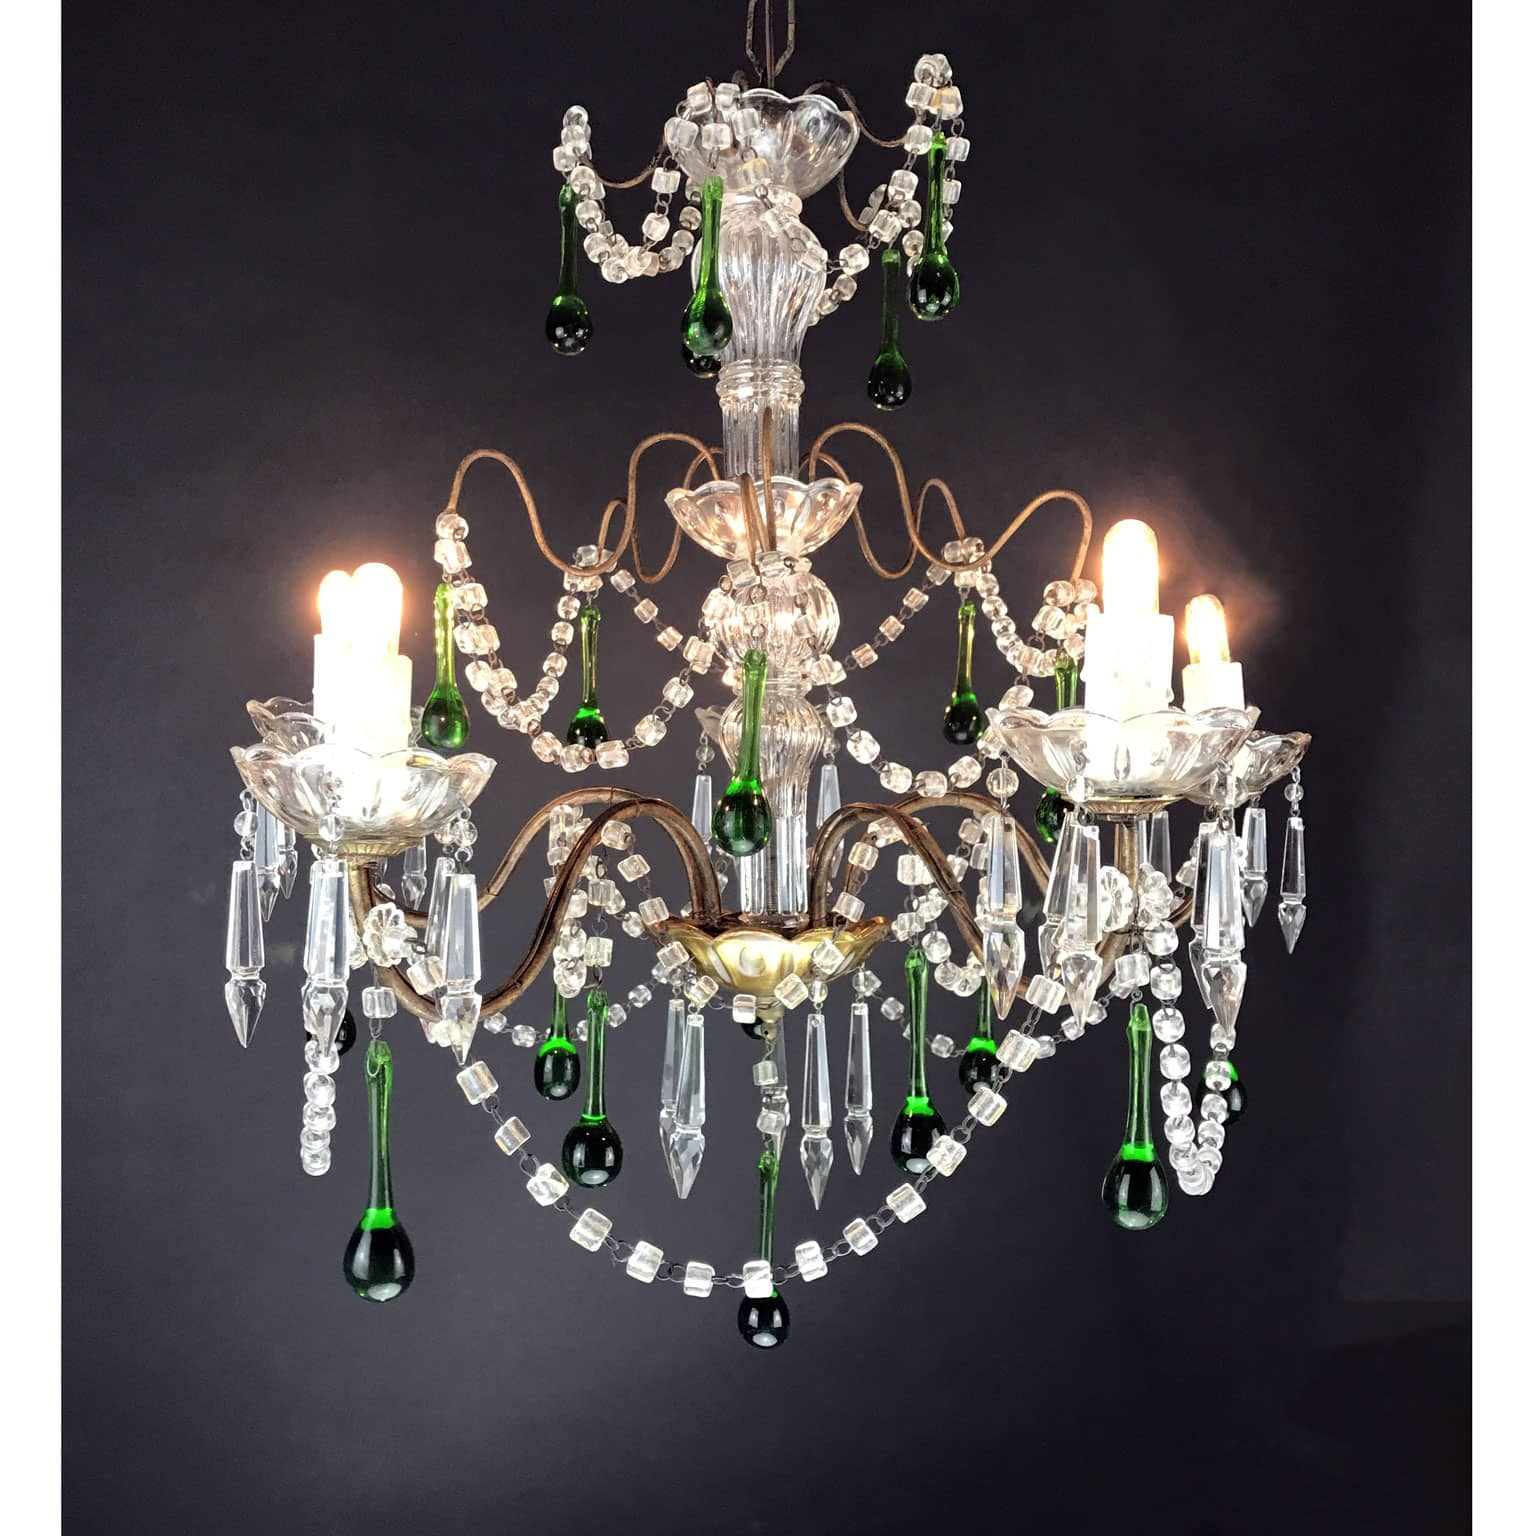 fixtures green light interiors chattanooga interior designer on shedding room tn chandelier antique the some decorator